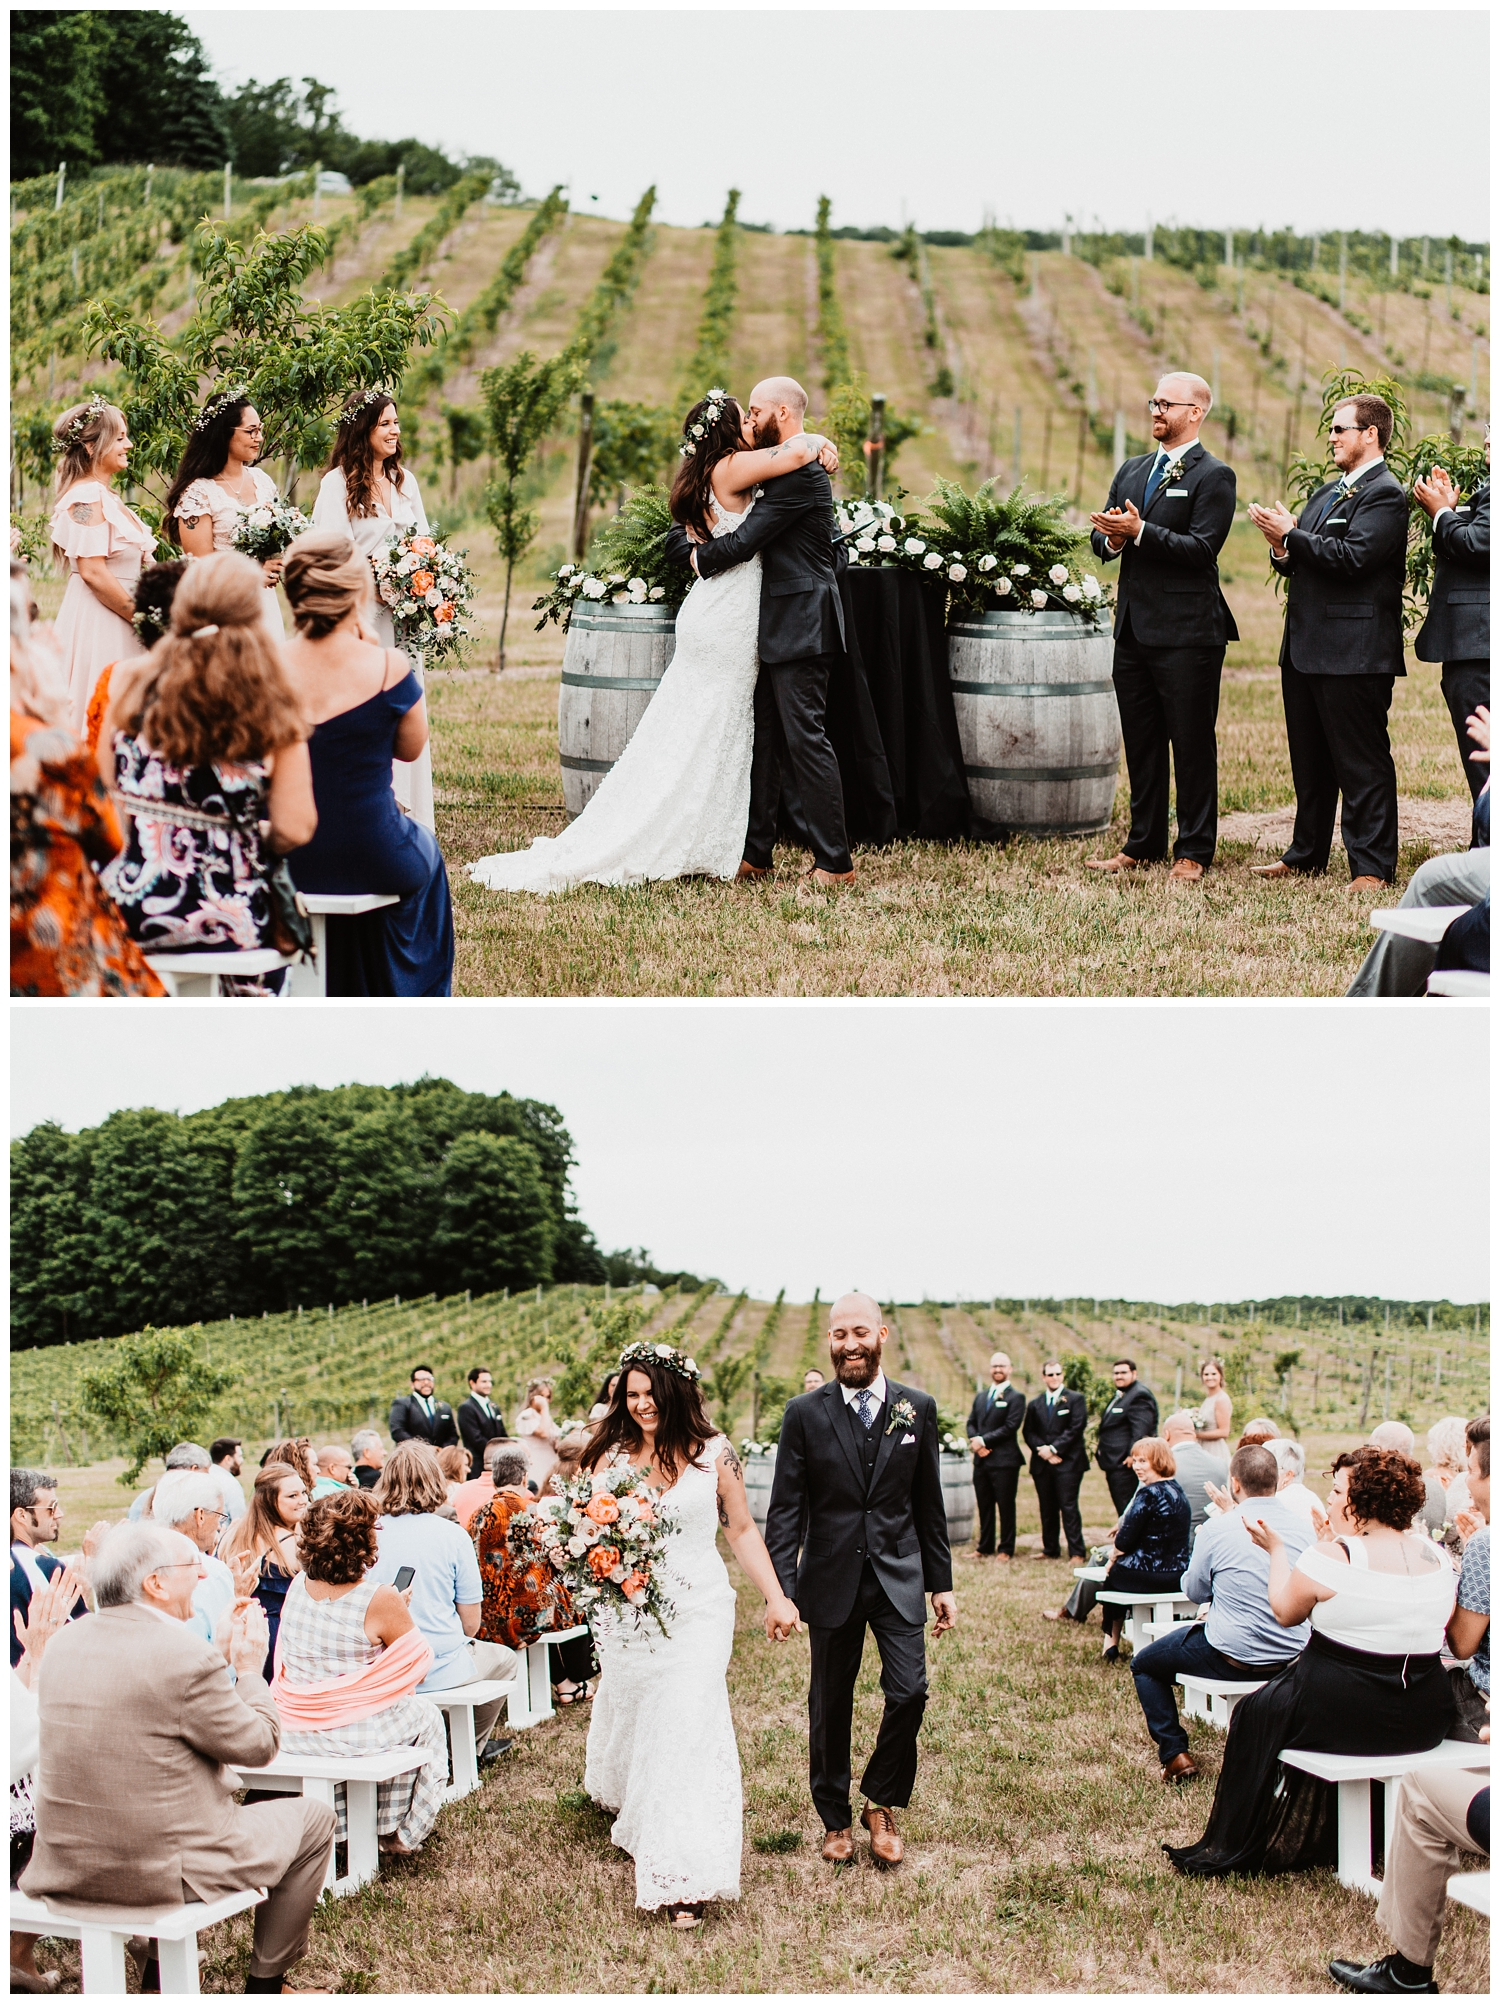 Northern_Michigan_Vineyard_Wedding_Nashville_Wedding_Photographer0102.jpg